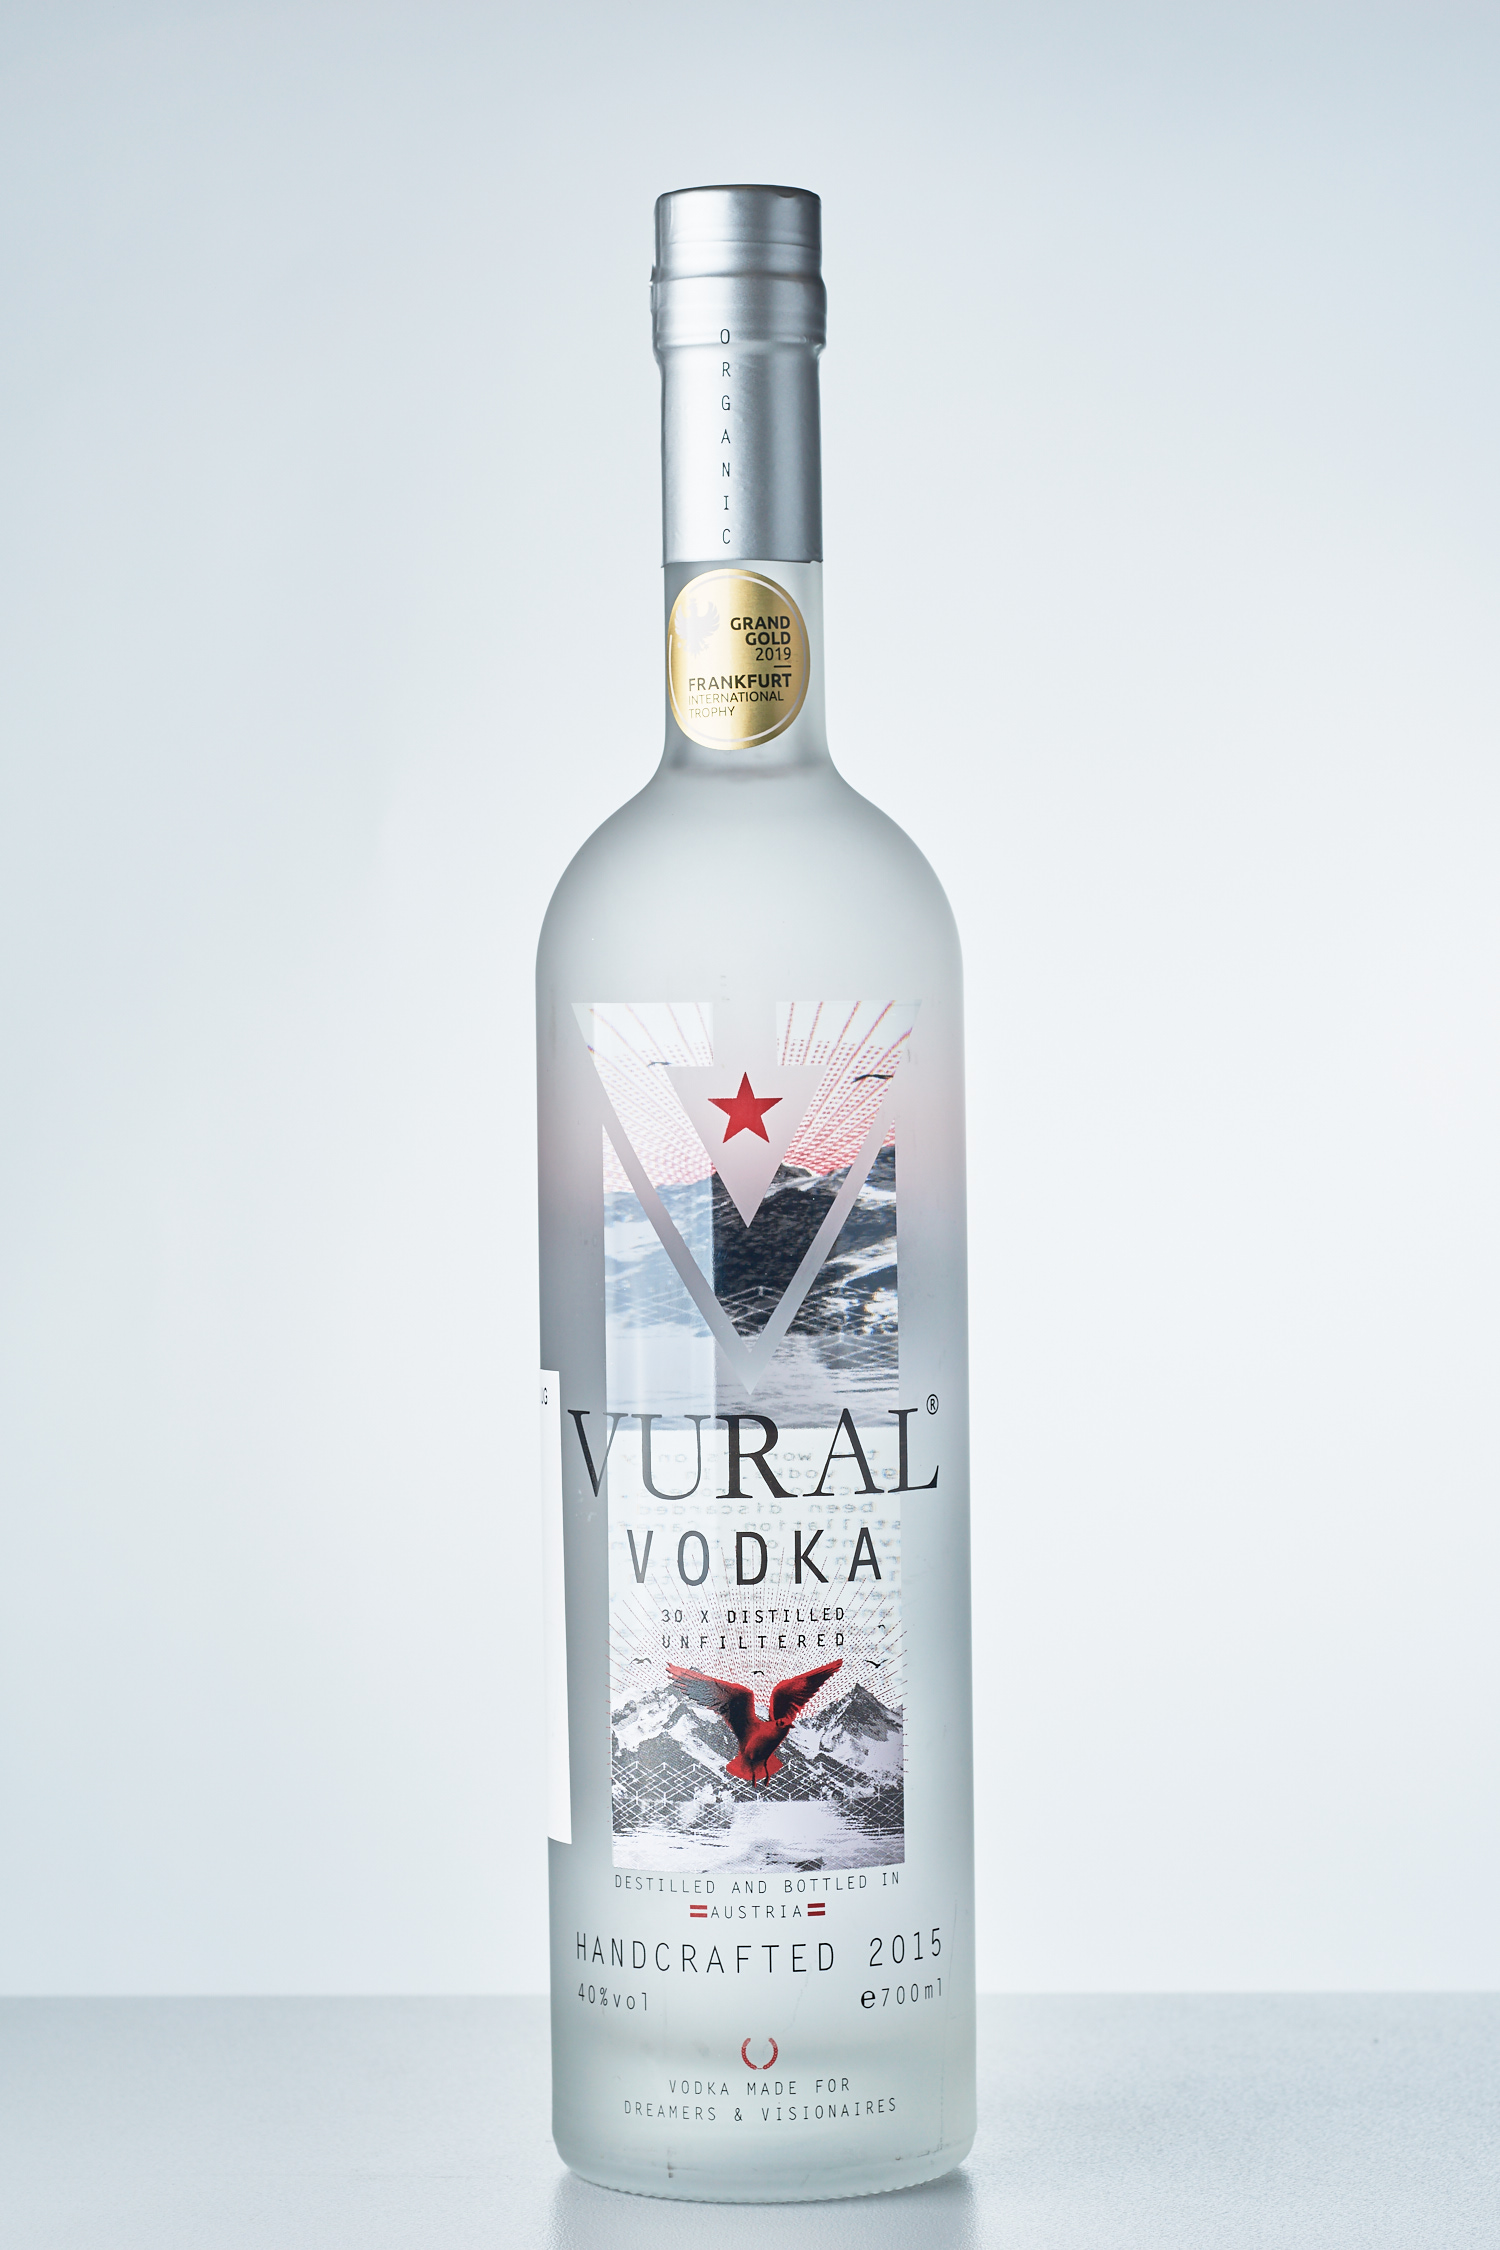 Vural Vodka International - Vural Vodka